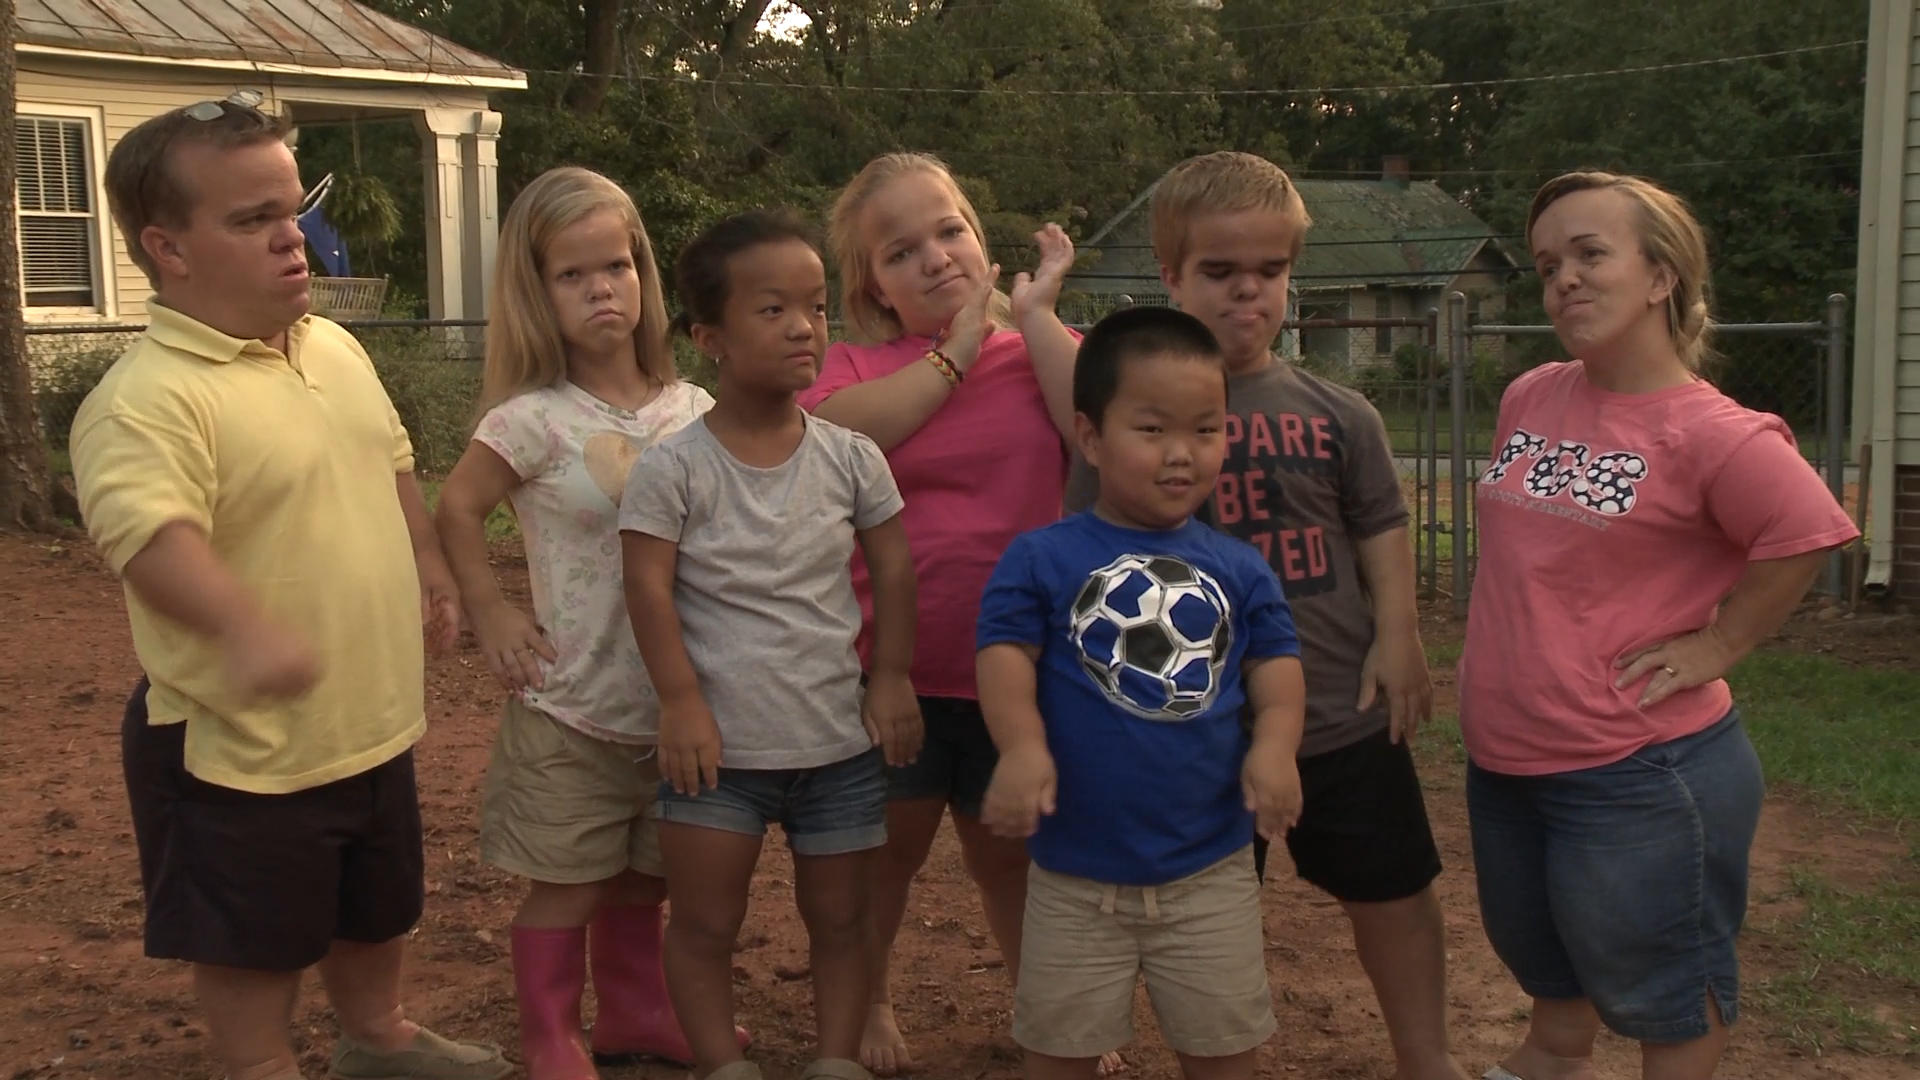 7 little johnstons are back tlc for Where does the outdaughtered family live